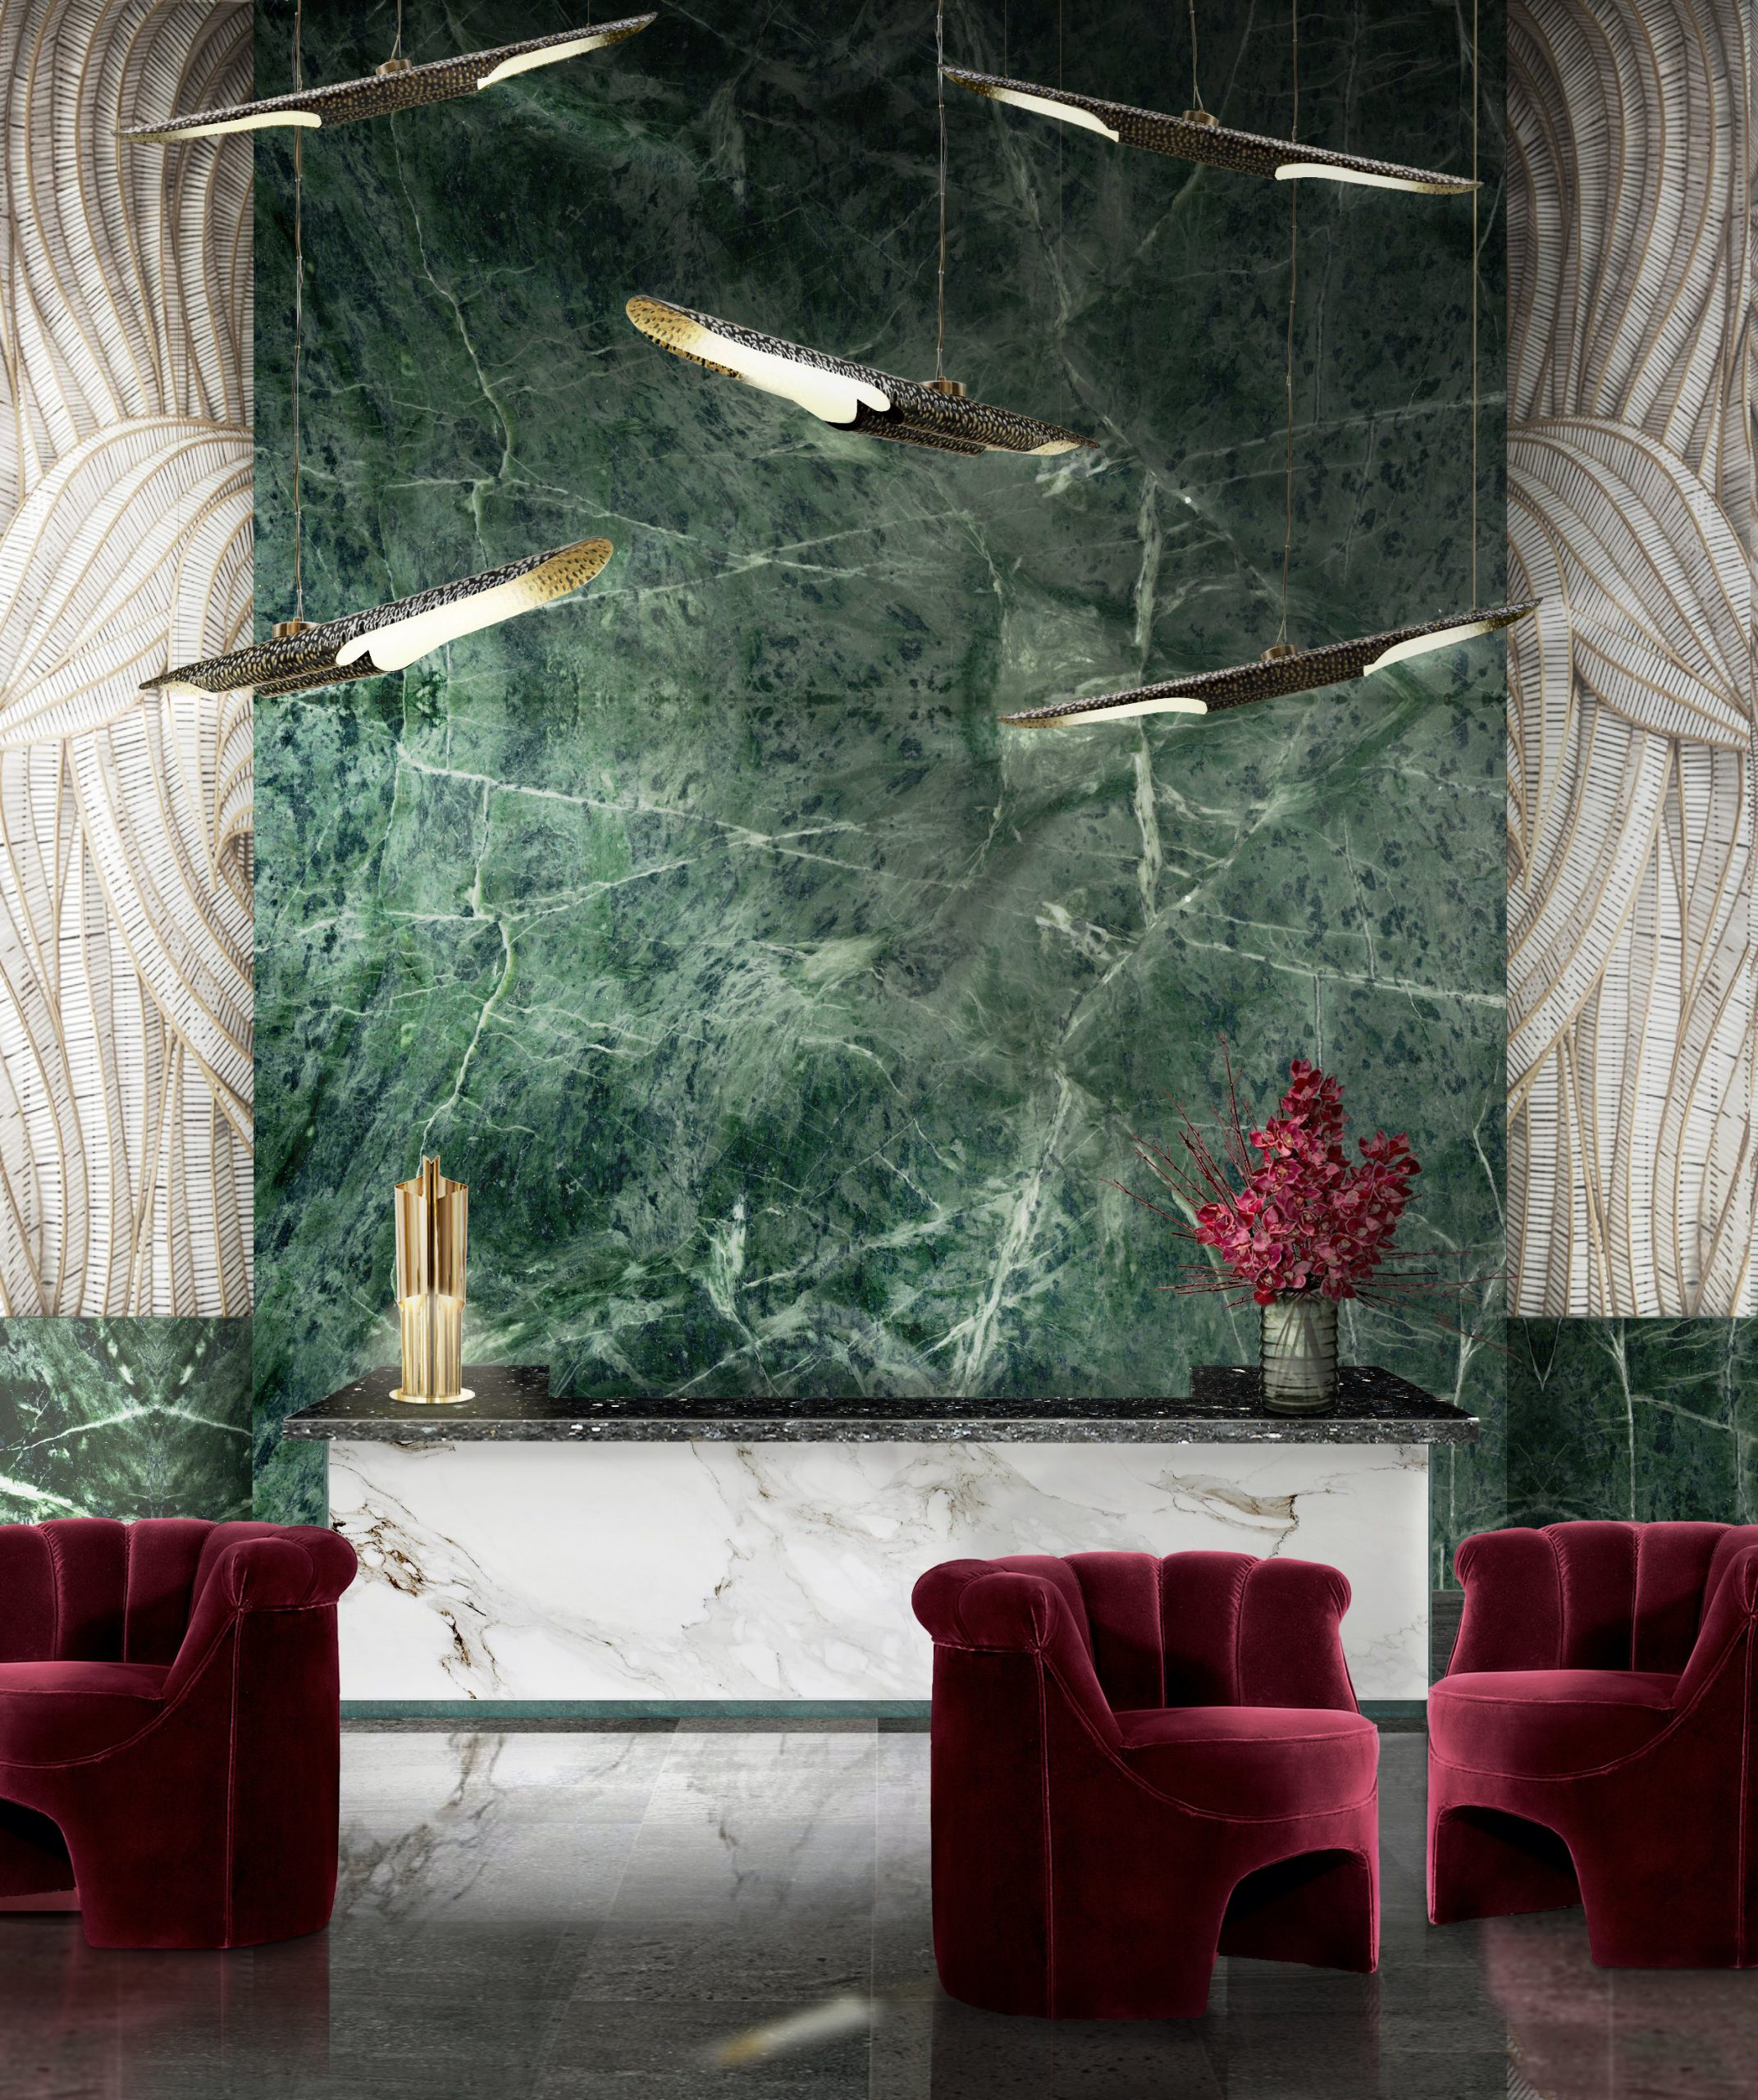 Hotel Lobbies and Waiting Spaces: A List Of 20 Modern Armchairs  modern armchairs Hotel Lobbies And Waiting Spaces: A List Of 20 Modern Armchairs Hotel Lobbies and Waiting Spaces A List Of 20 Modern Armchairs 1 scaled